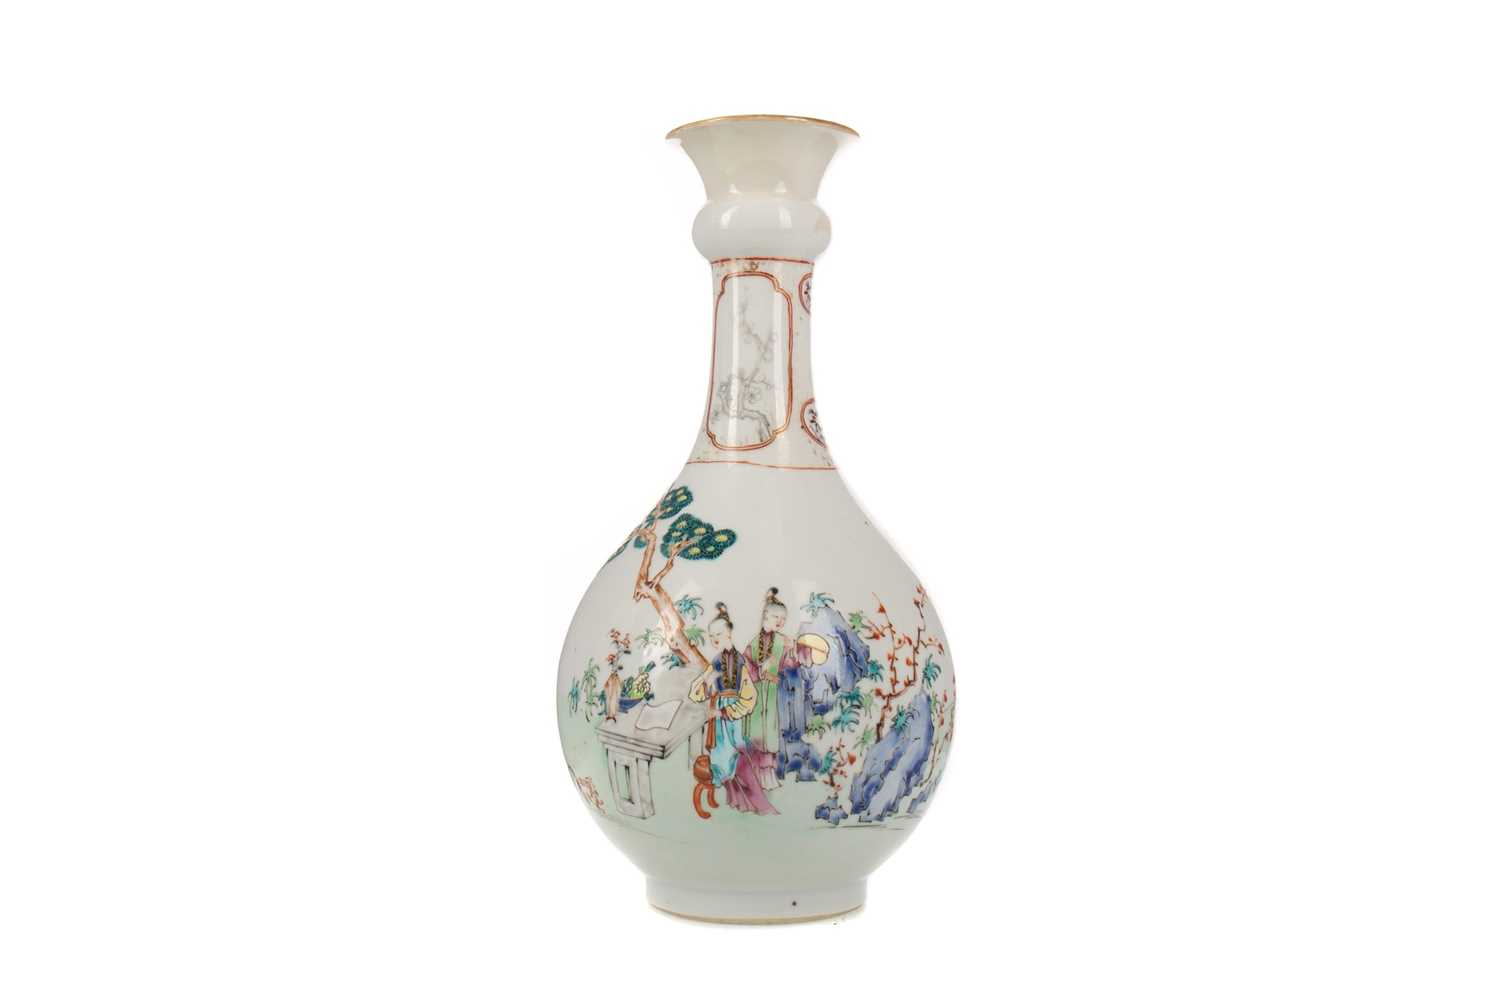 Lot 1690 - A LATE 19TH/EARLY 20TH CENTURY CHINESE FAMILLE ROSE VASE